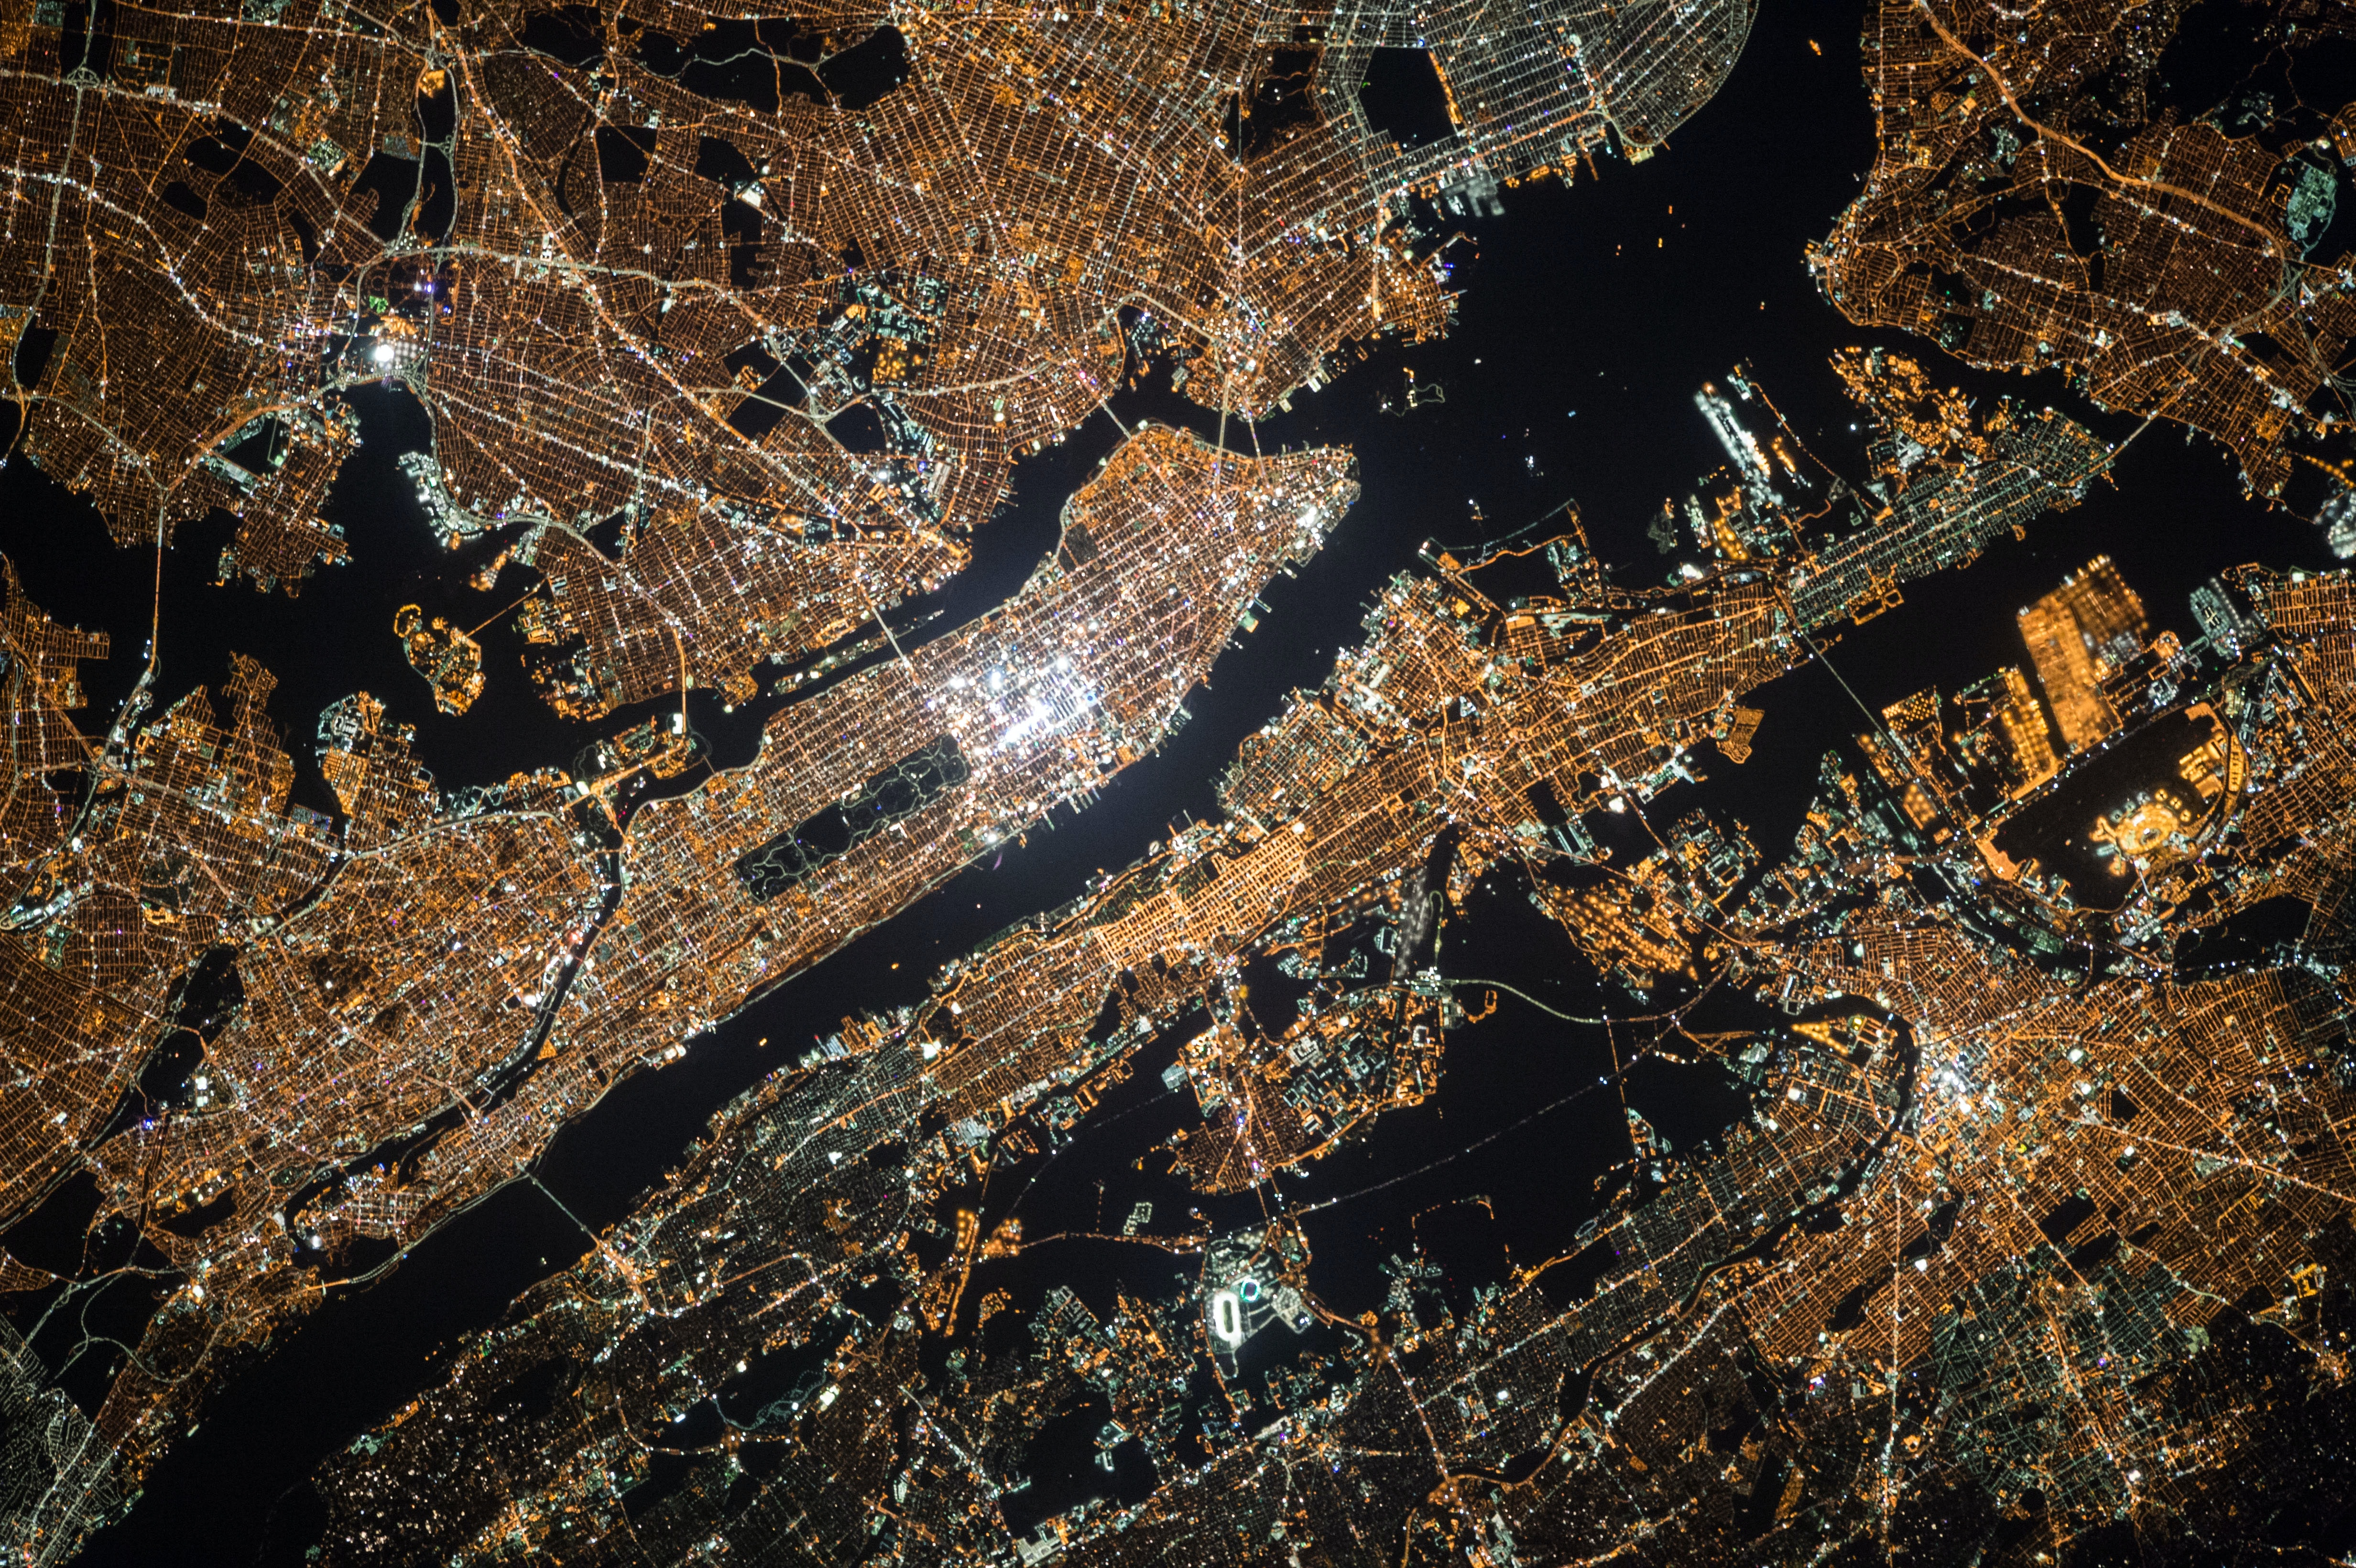 Satellite view of the city lights of New York City at night